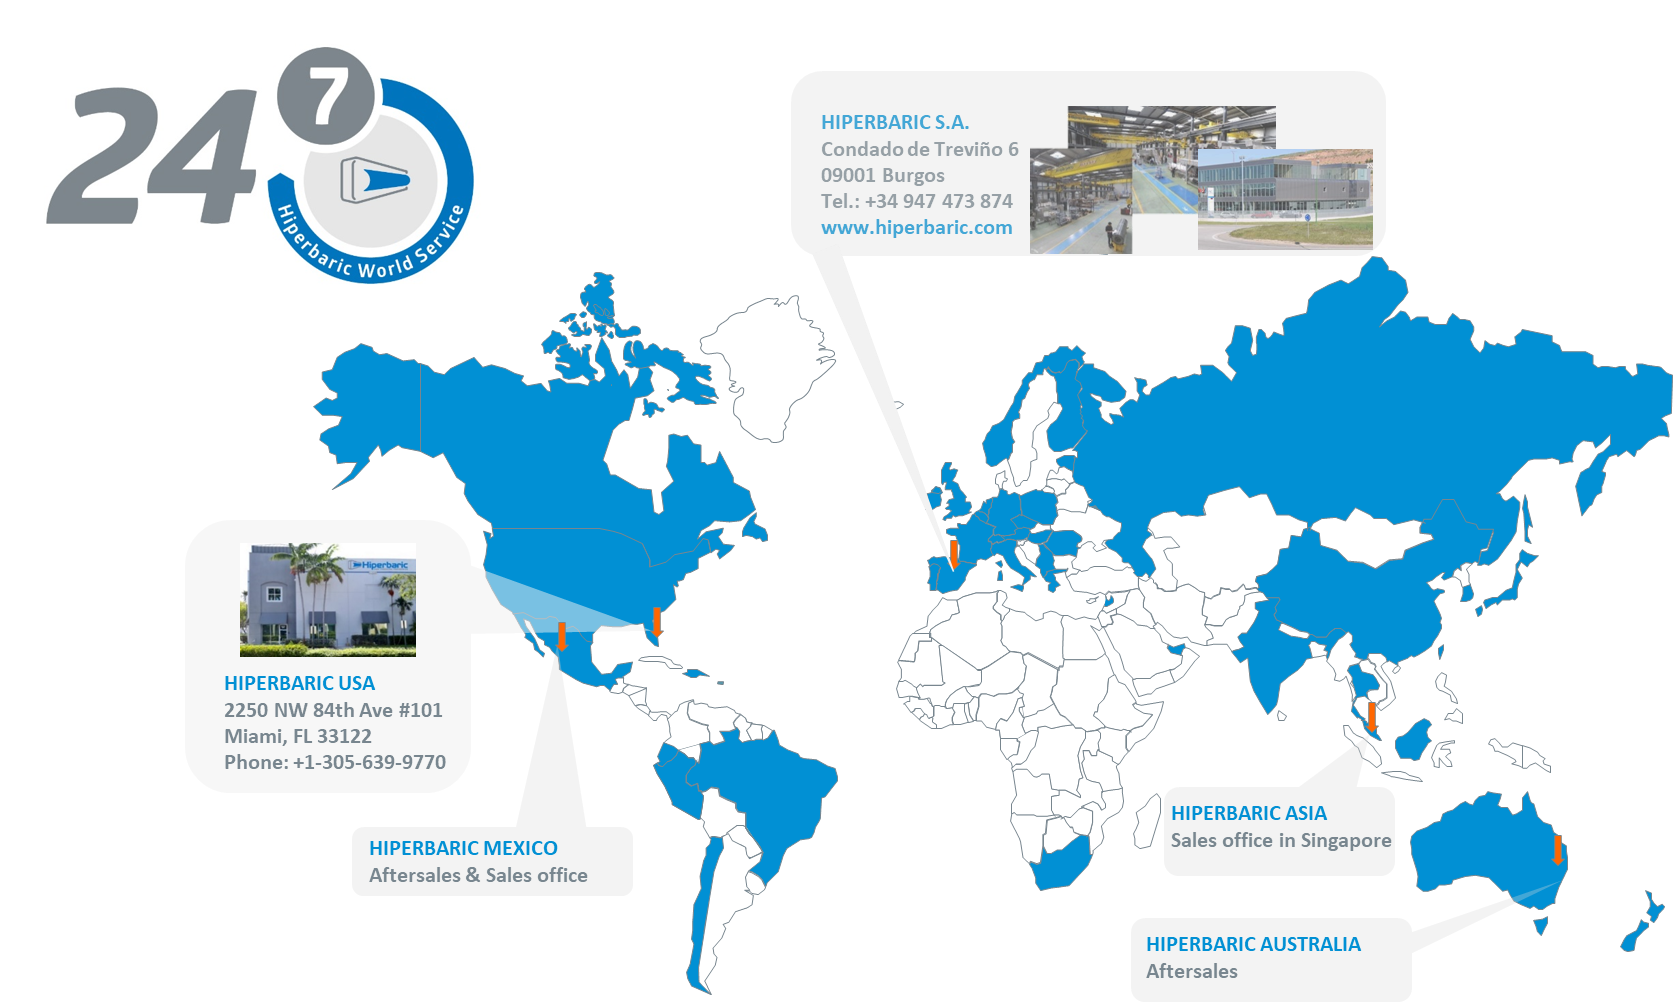 Hiperbaric Offices around the World